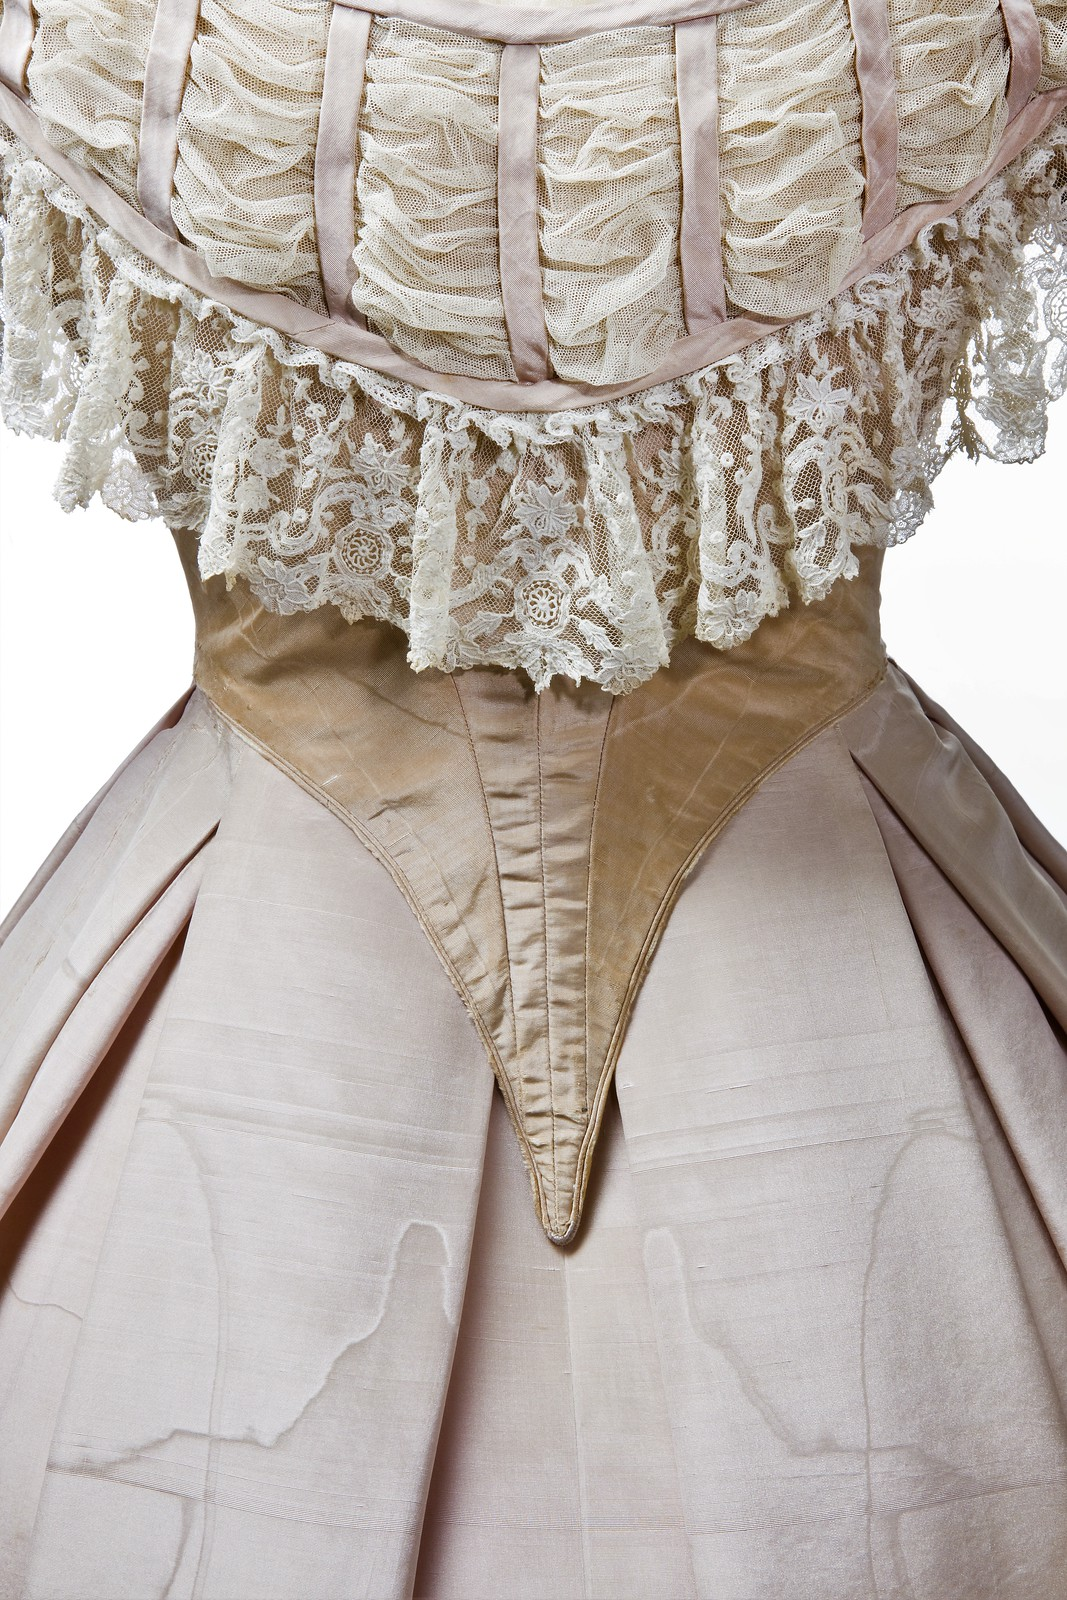 Detail of the dress Wilhelmina was wearing for the portrait of 1865